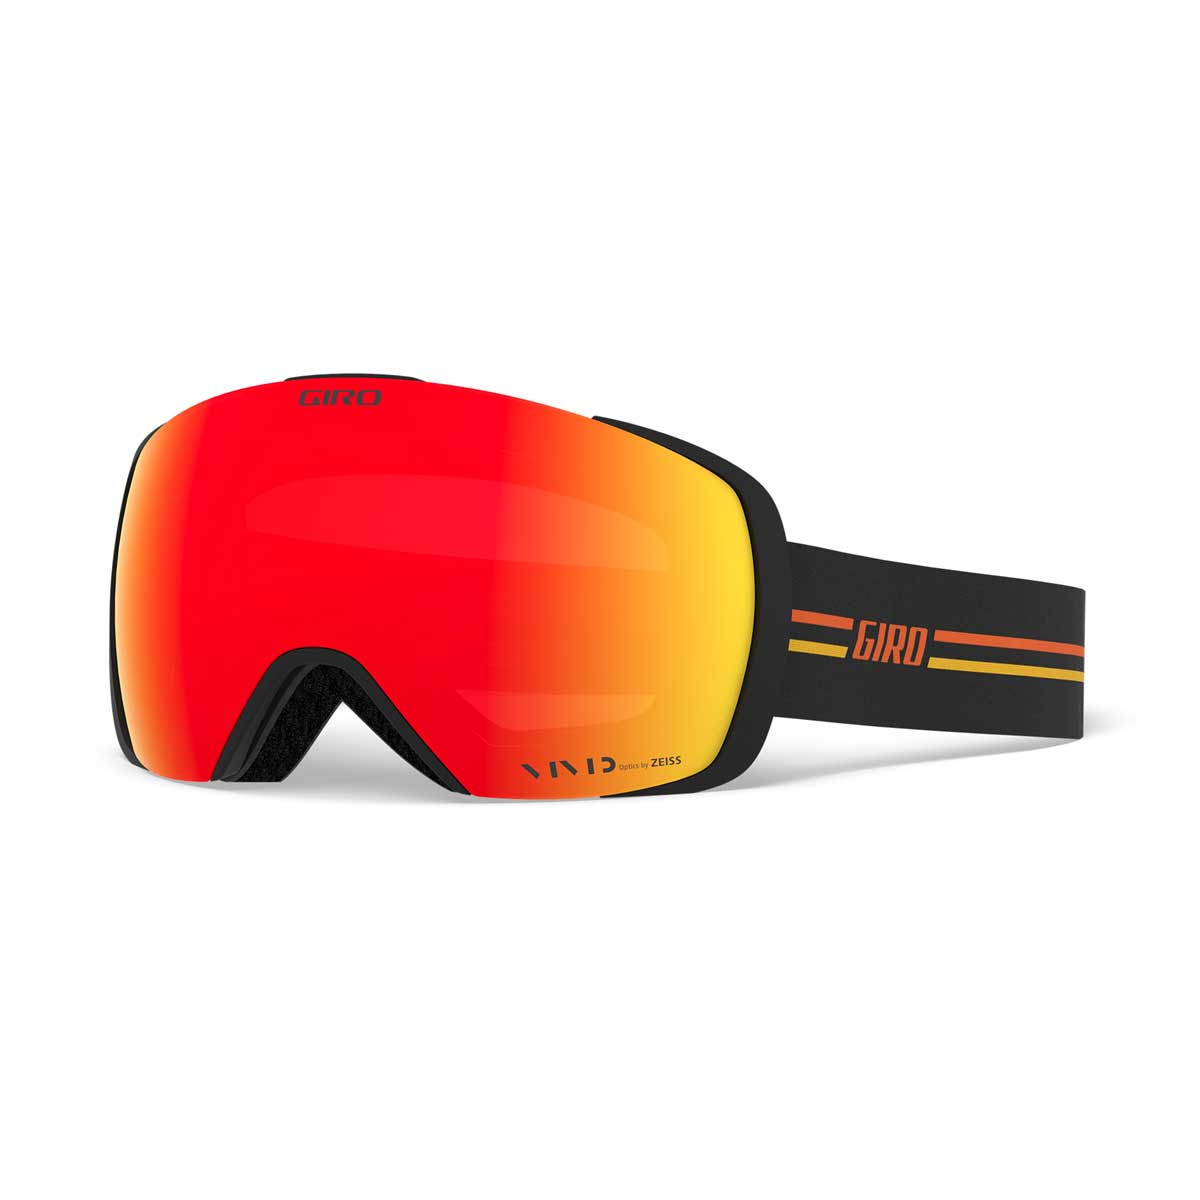 Giro Contact Goggle in GP Black with Orange